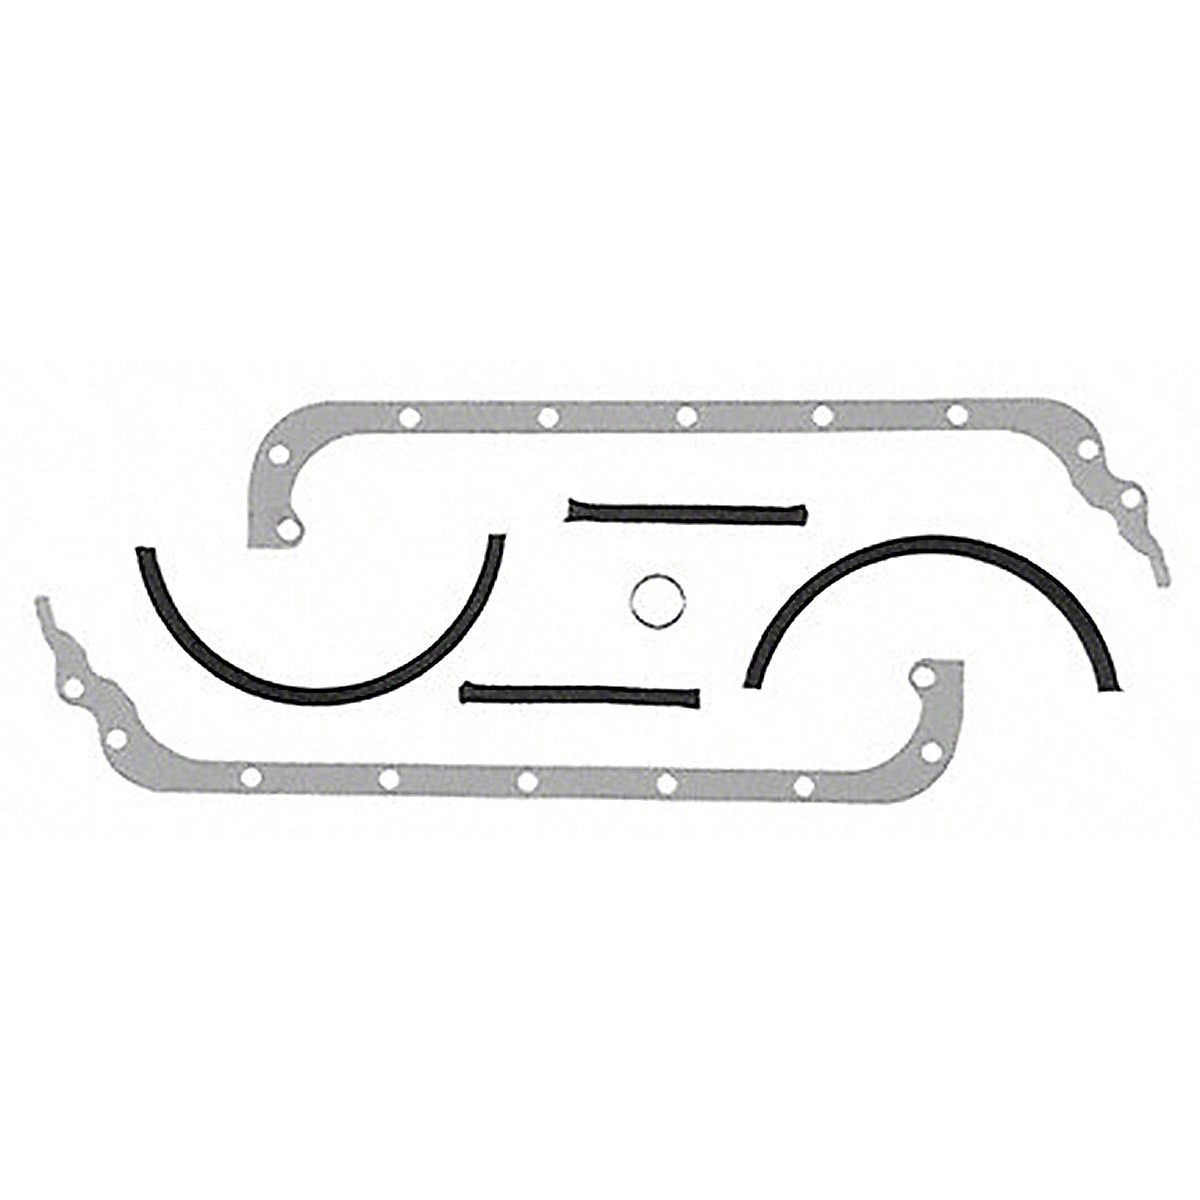 Oil Pan Gasket Set For Oliver: 44, Super 44, 440.